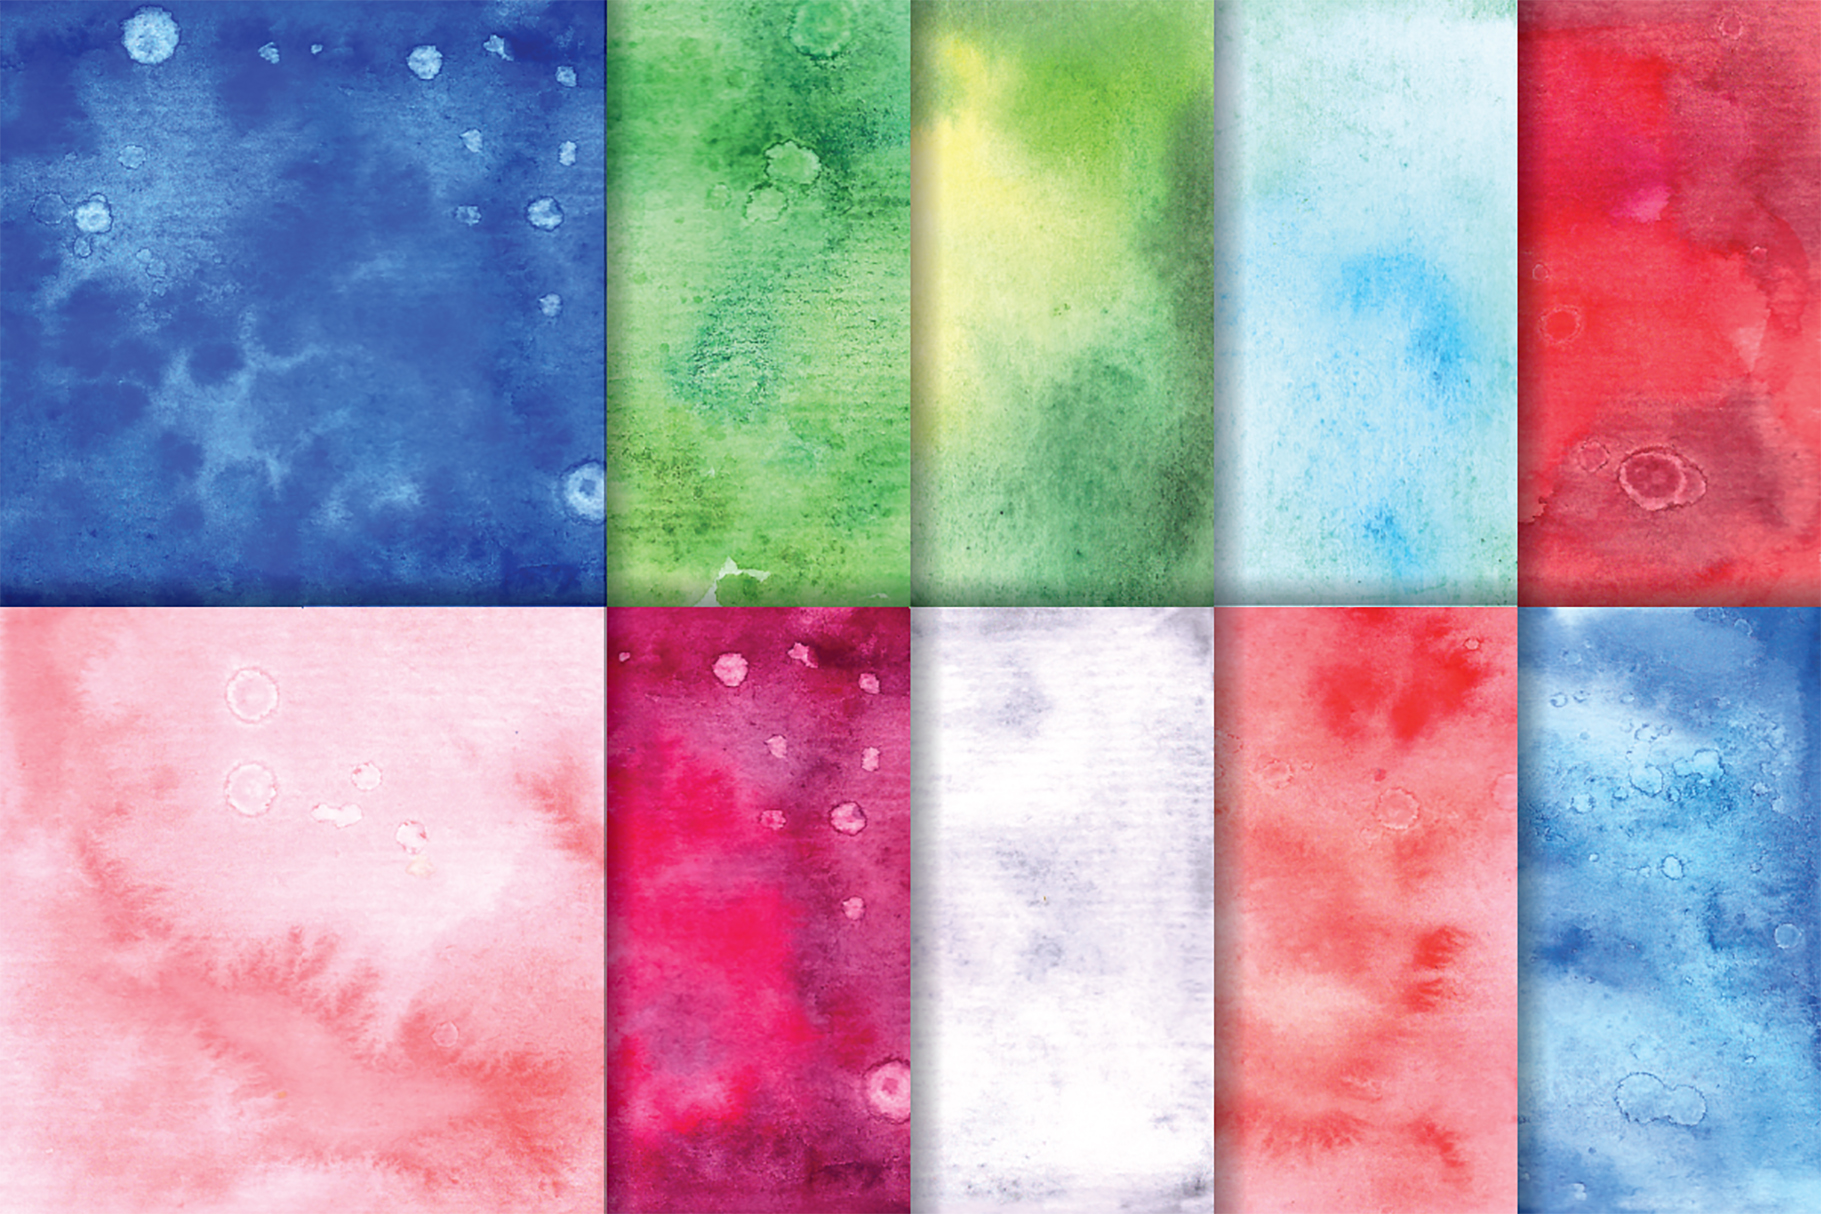 WaAbstract Watercolortercolor violet background example image 4